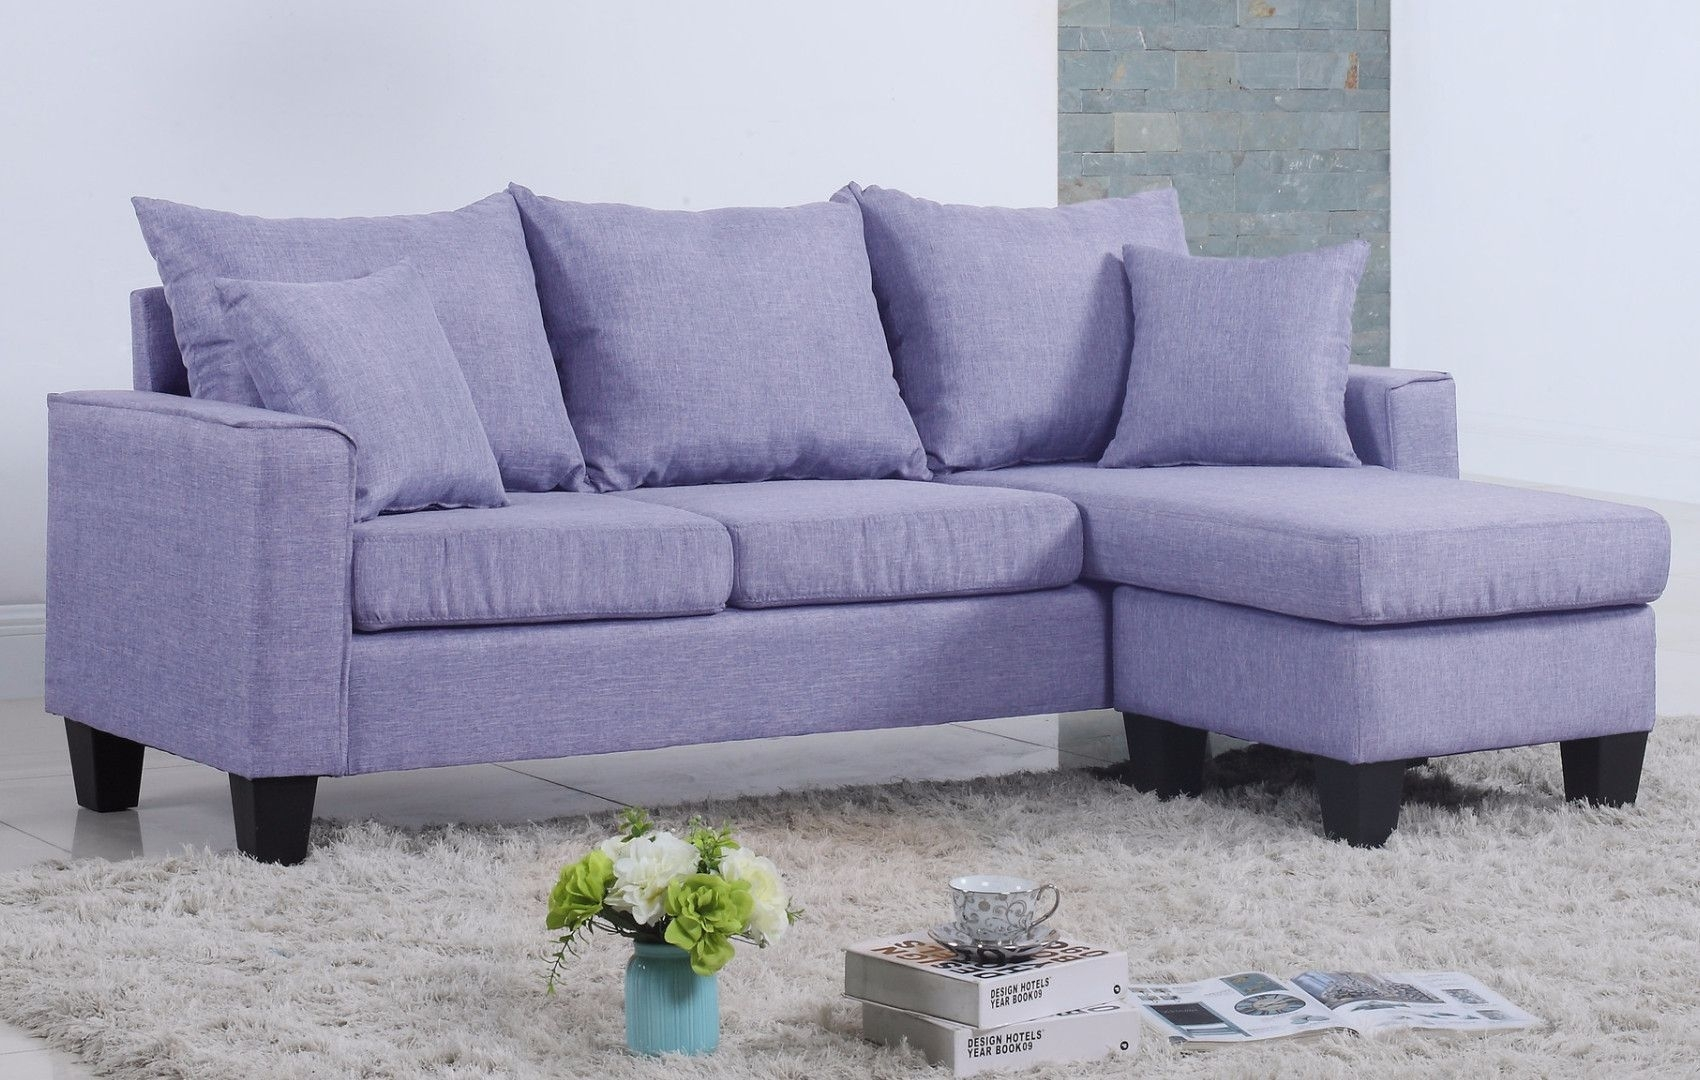 Modern Linen Fabric Small Space Sectional Sofa With Reversible With Regard To Collins Sofa Sectionals With Reversible Chaise (View 6 of 25)